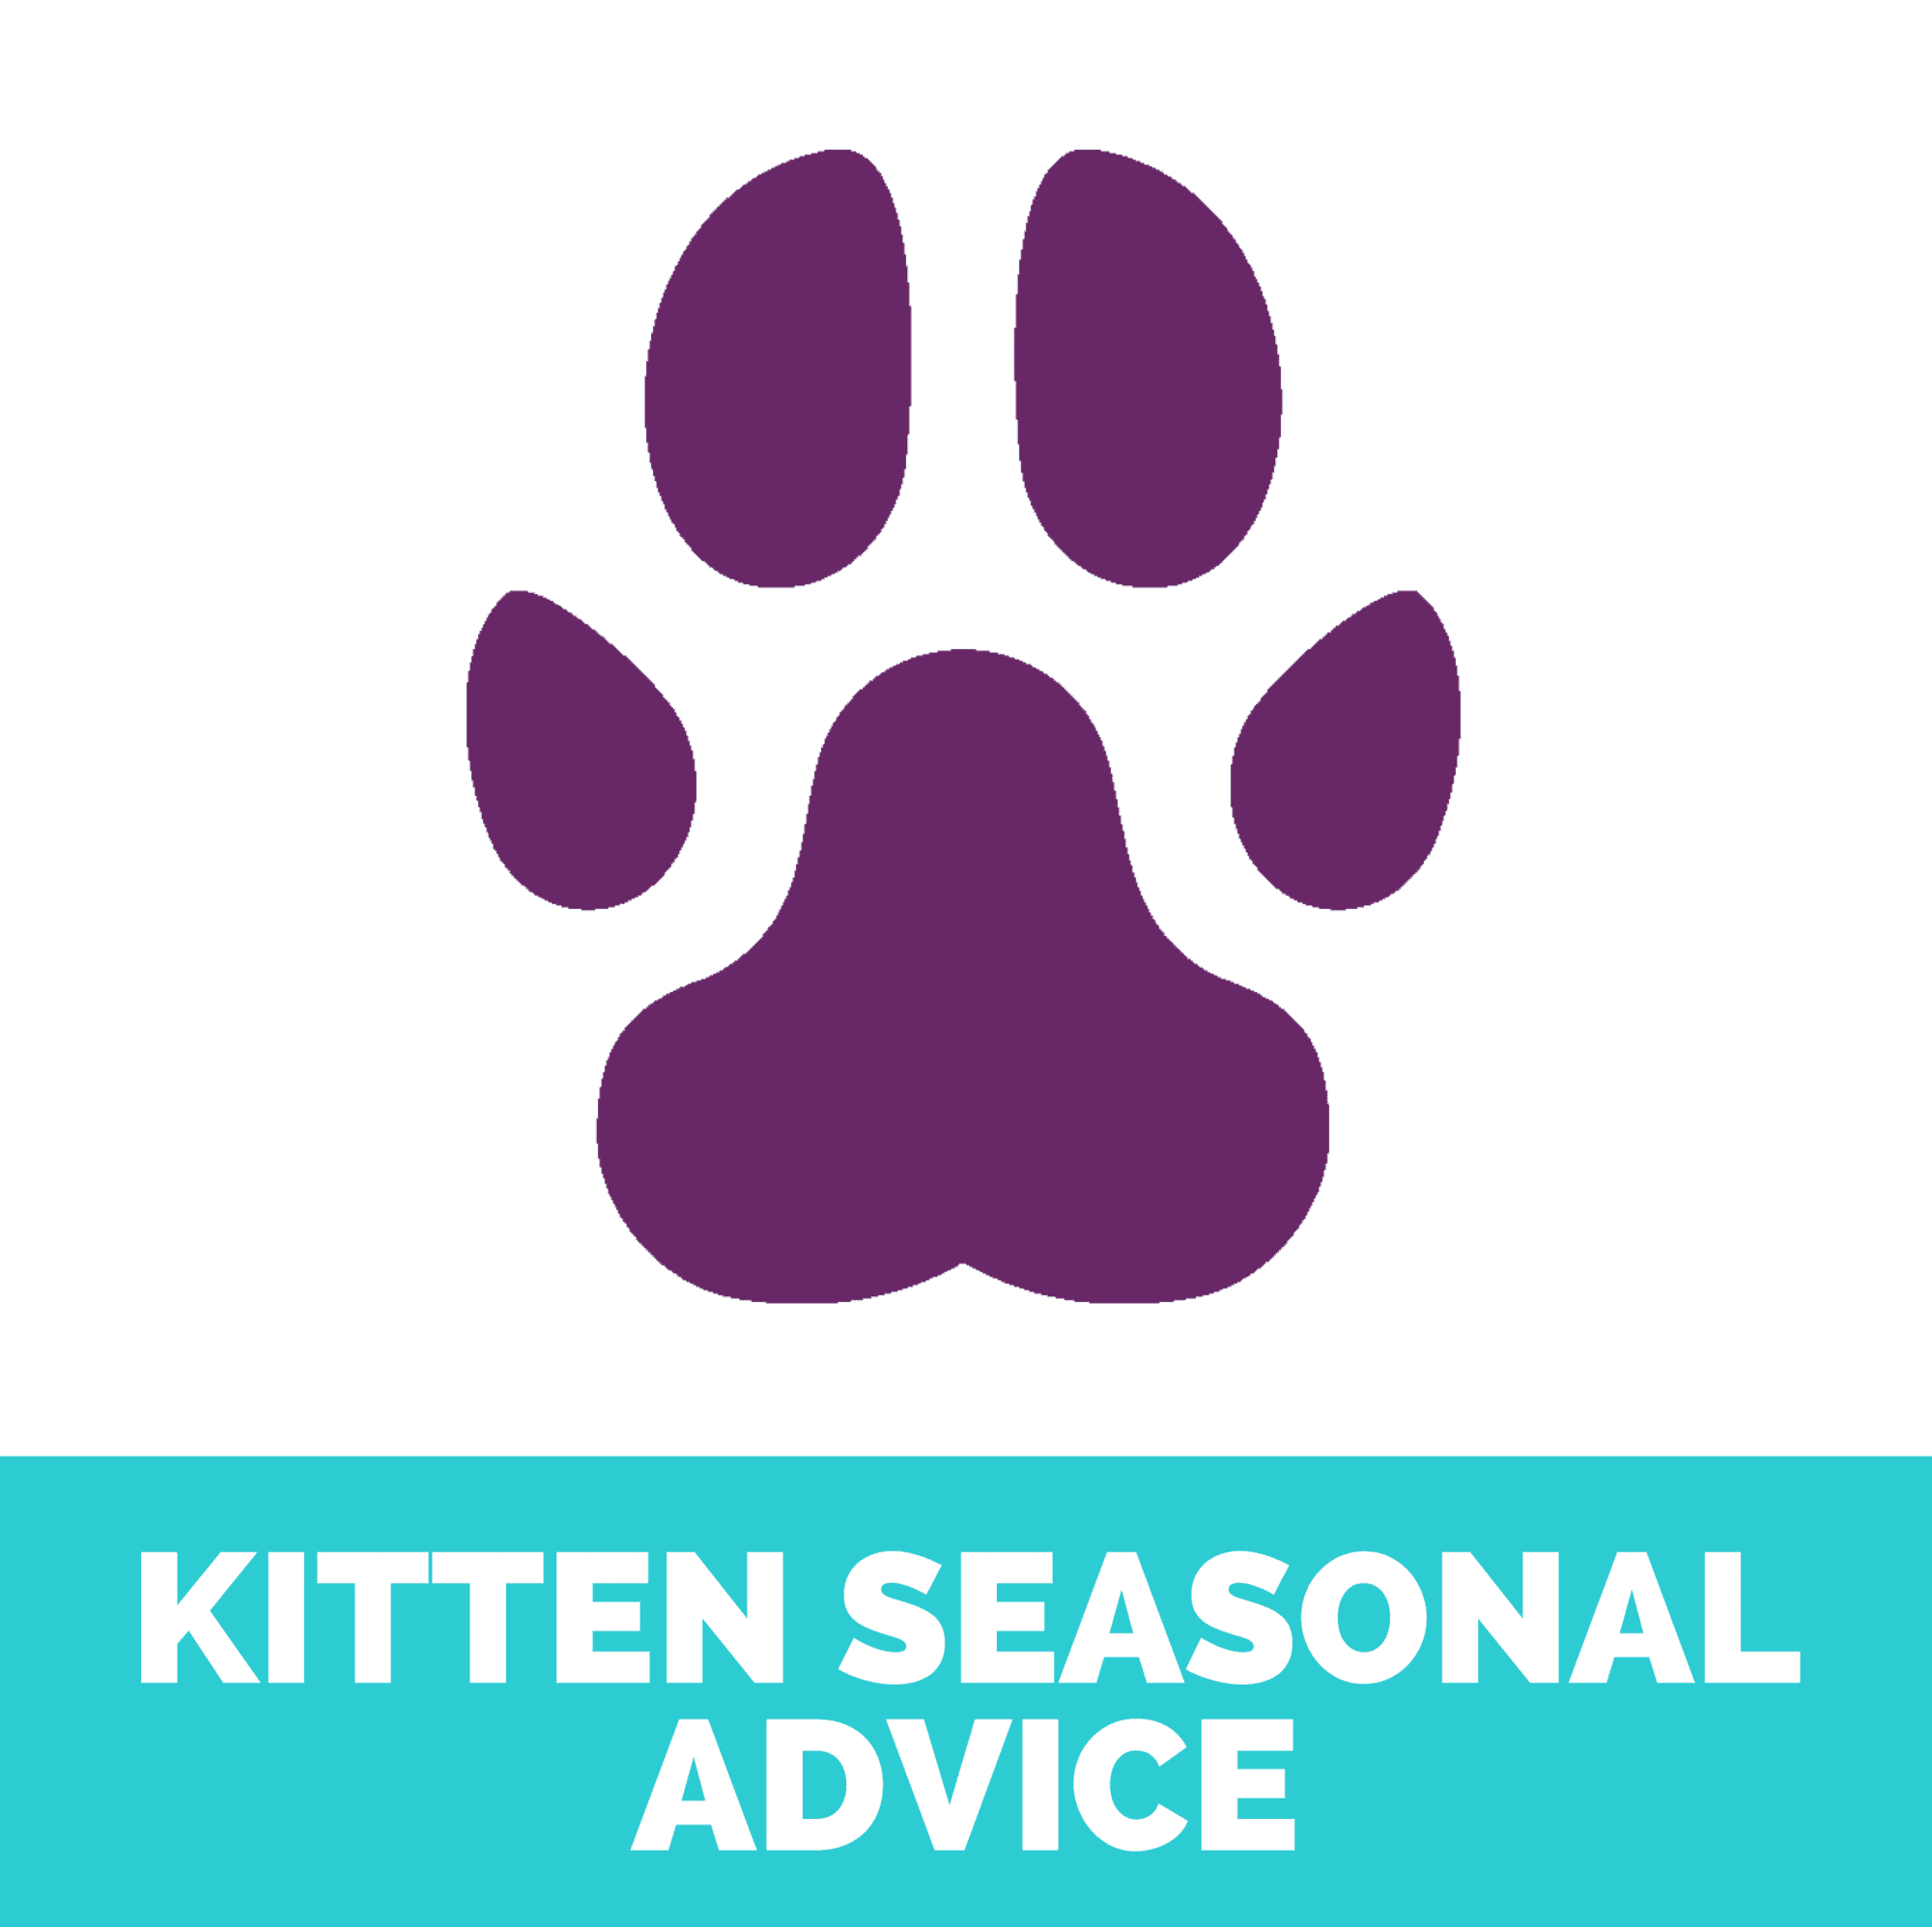 Kitten seasonal advice